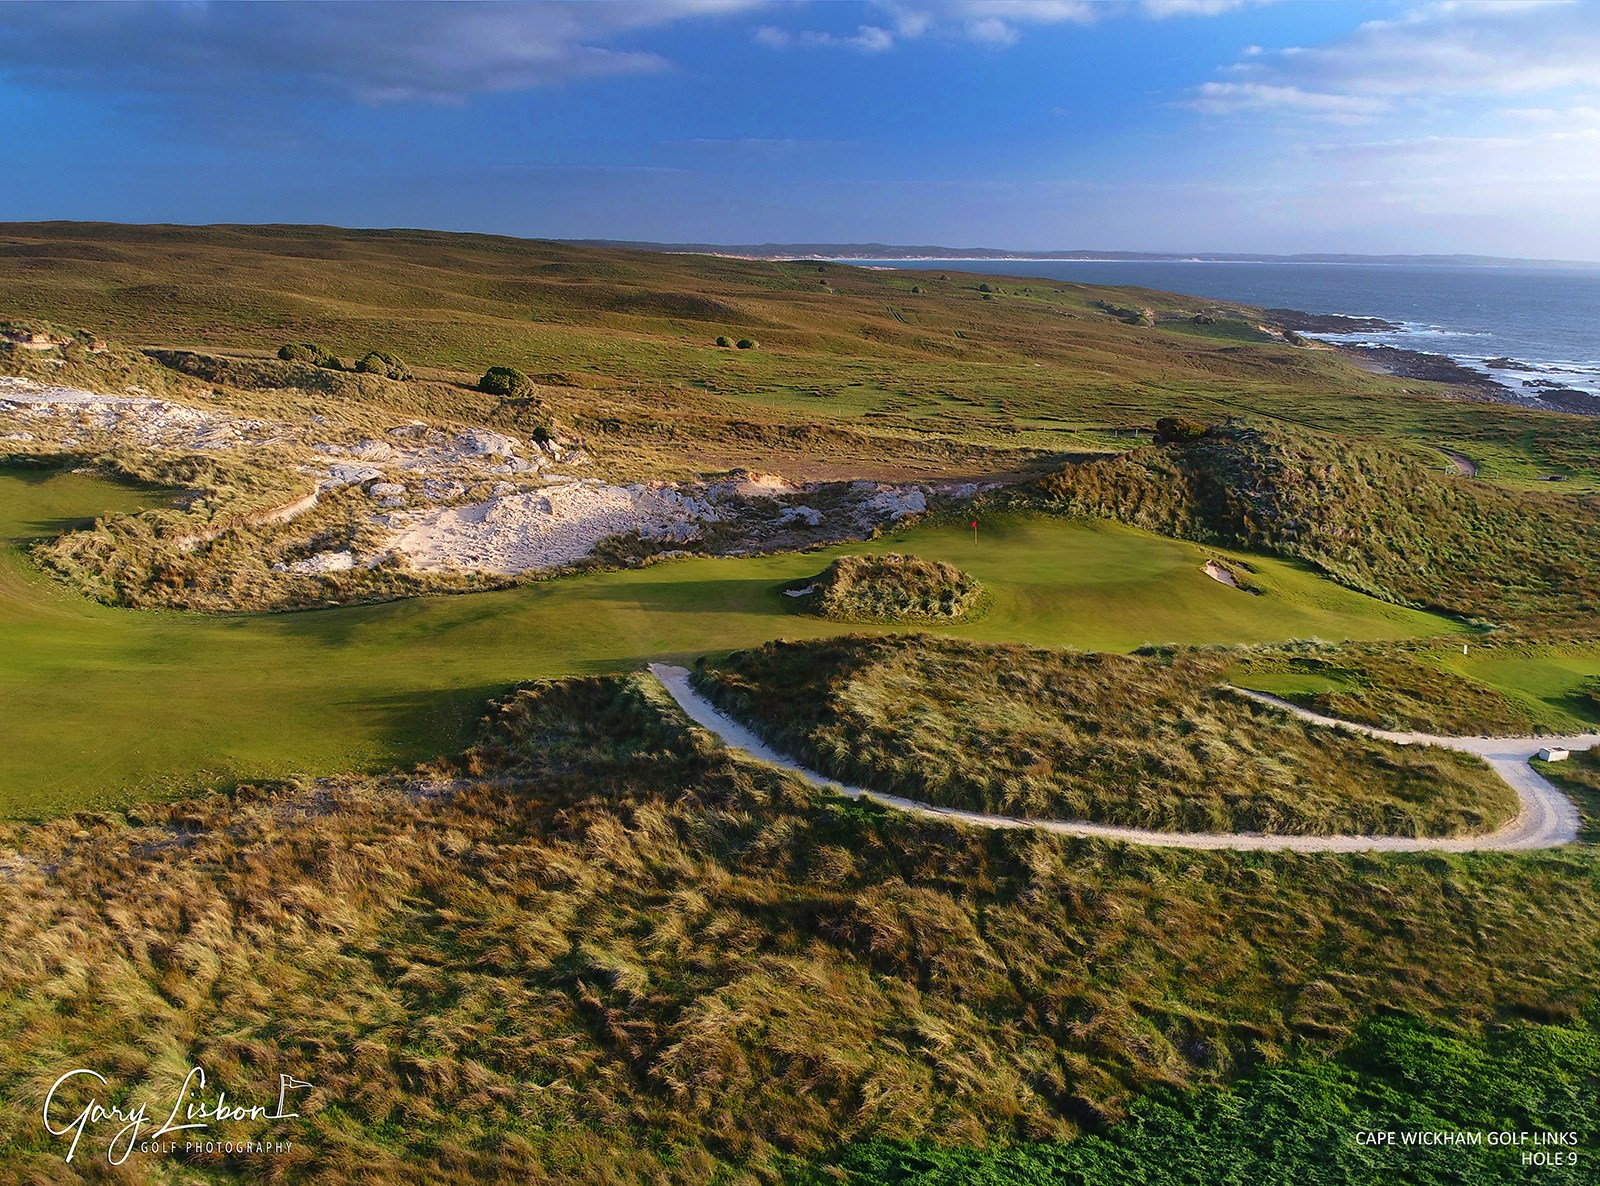 Cape Wickham Golf Course - King Island Hole 9